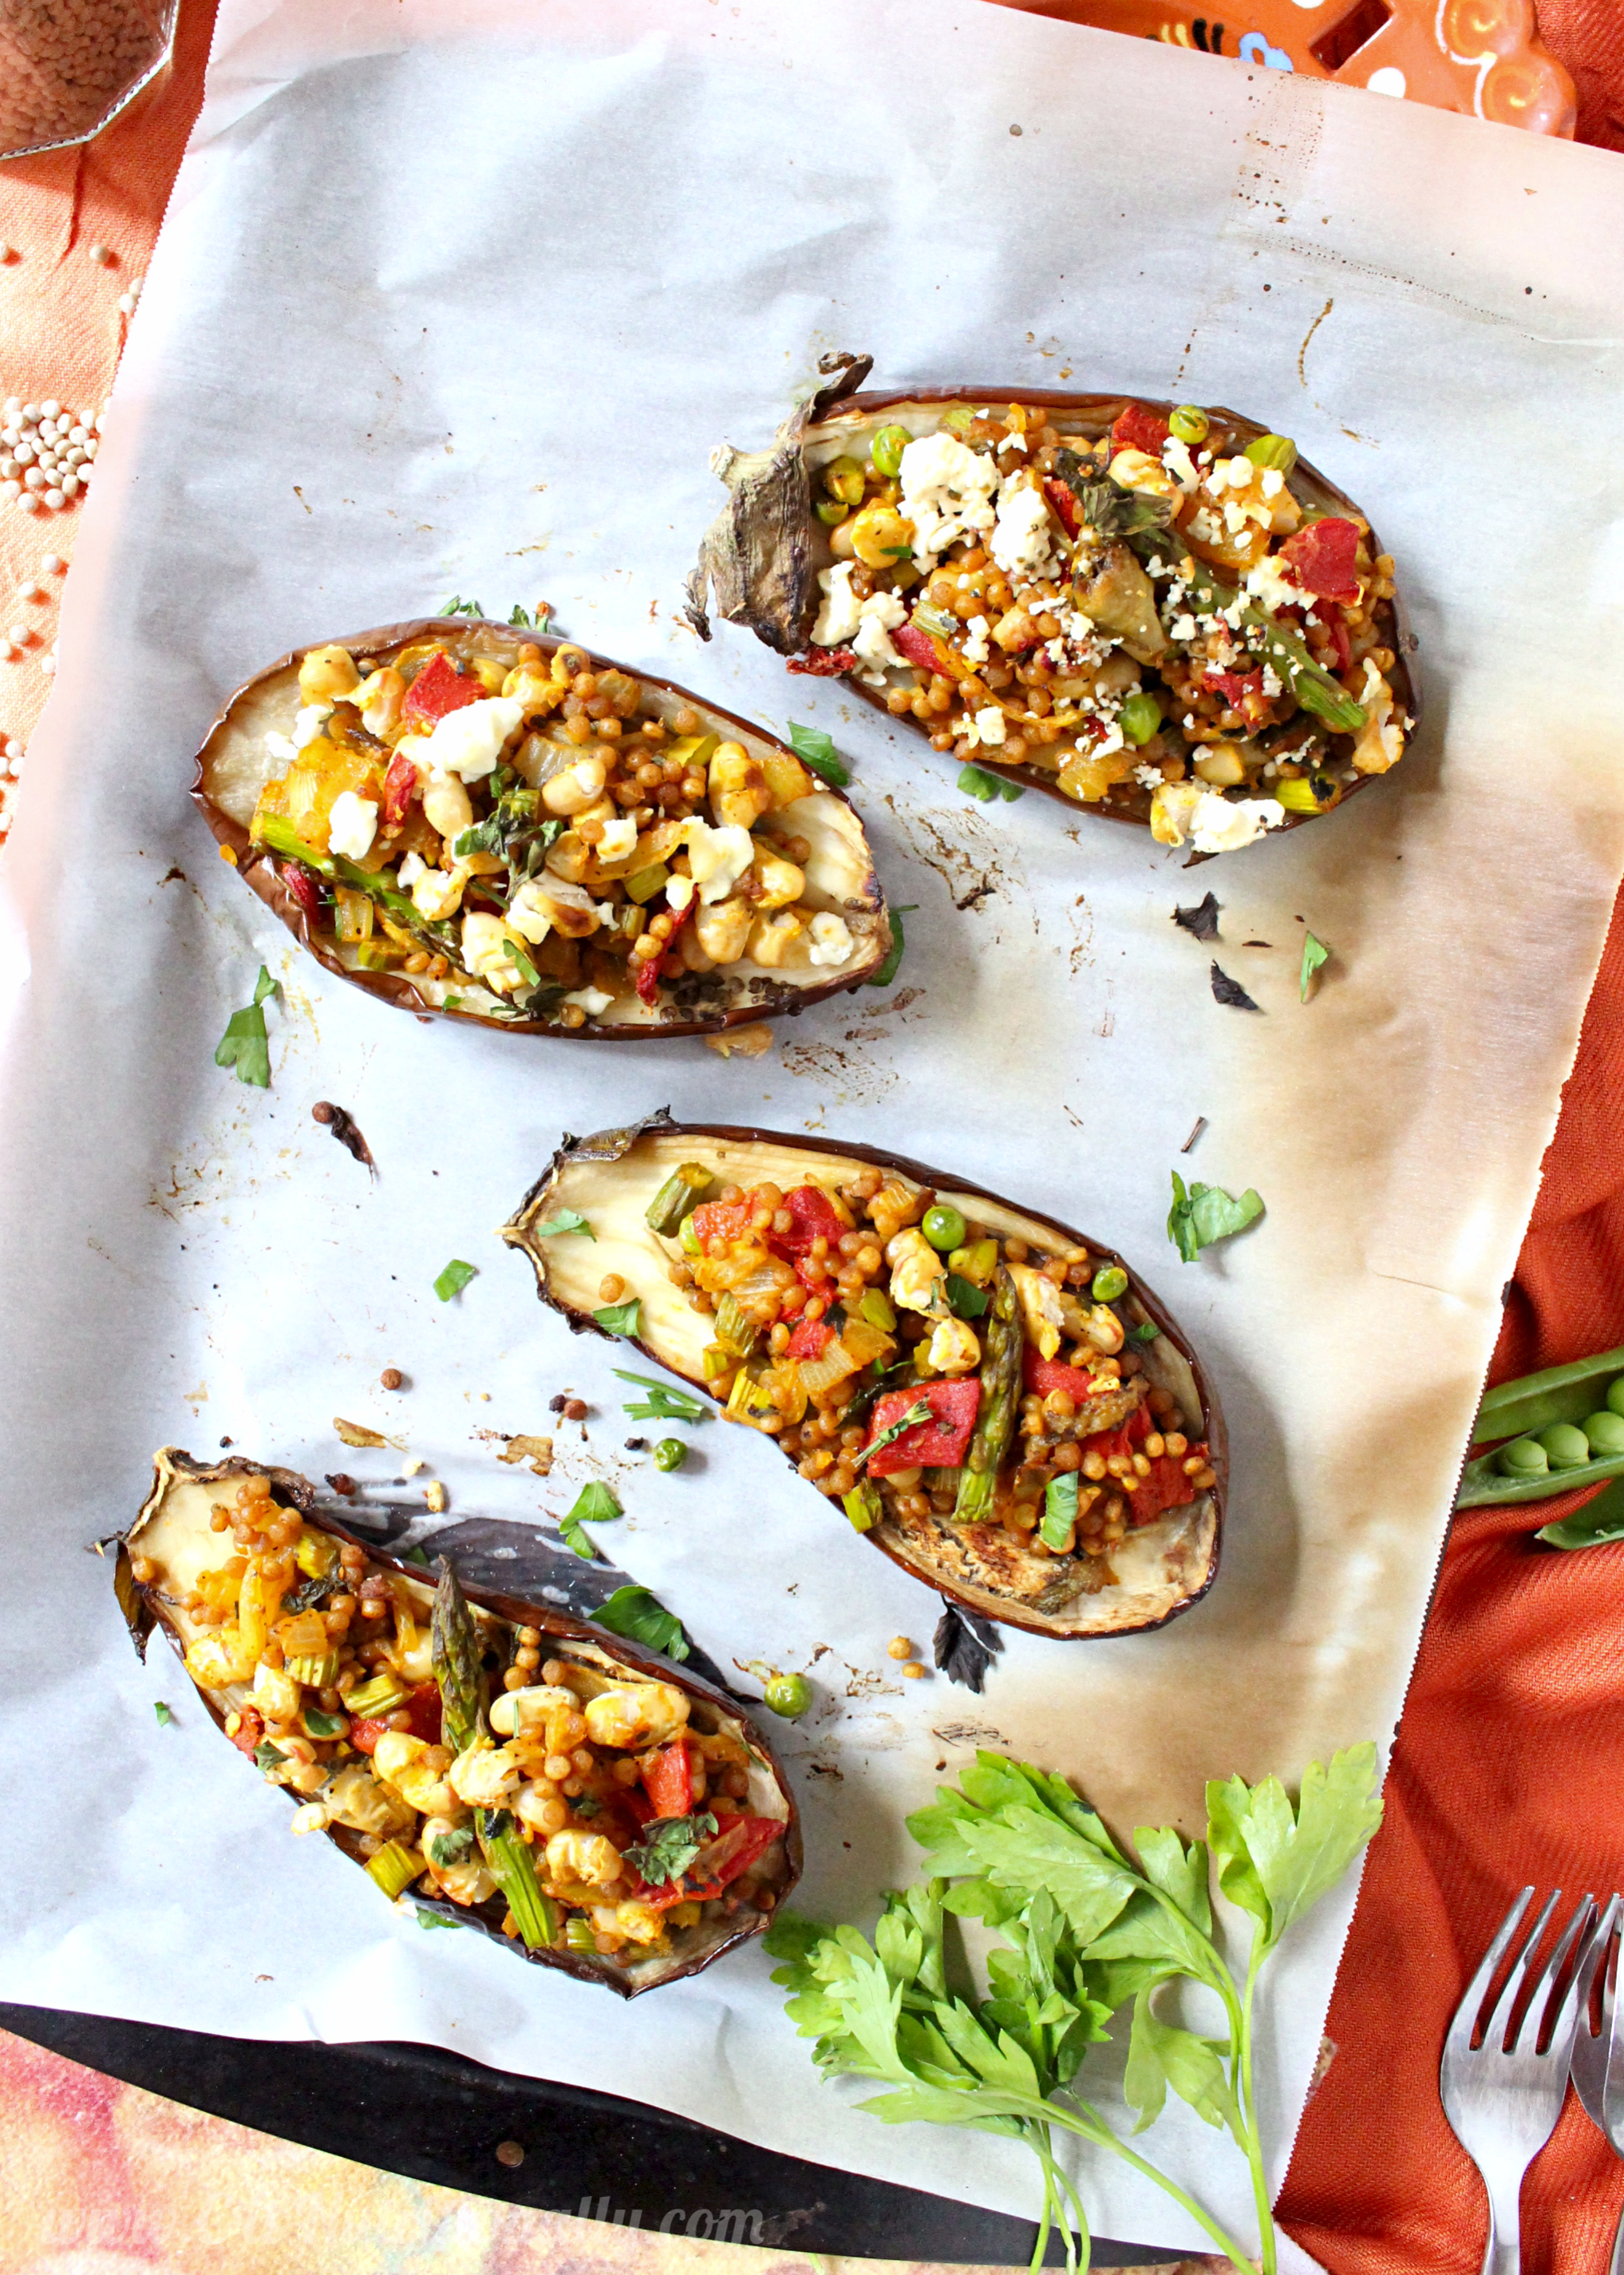 Israeli Cous Cous Stuffed Eggplant | C it Nutritionally